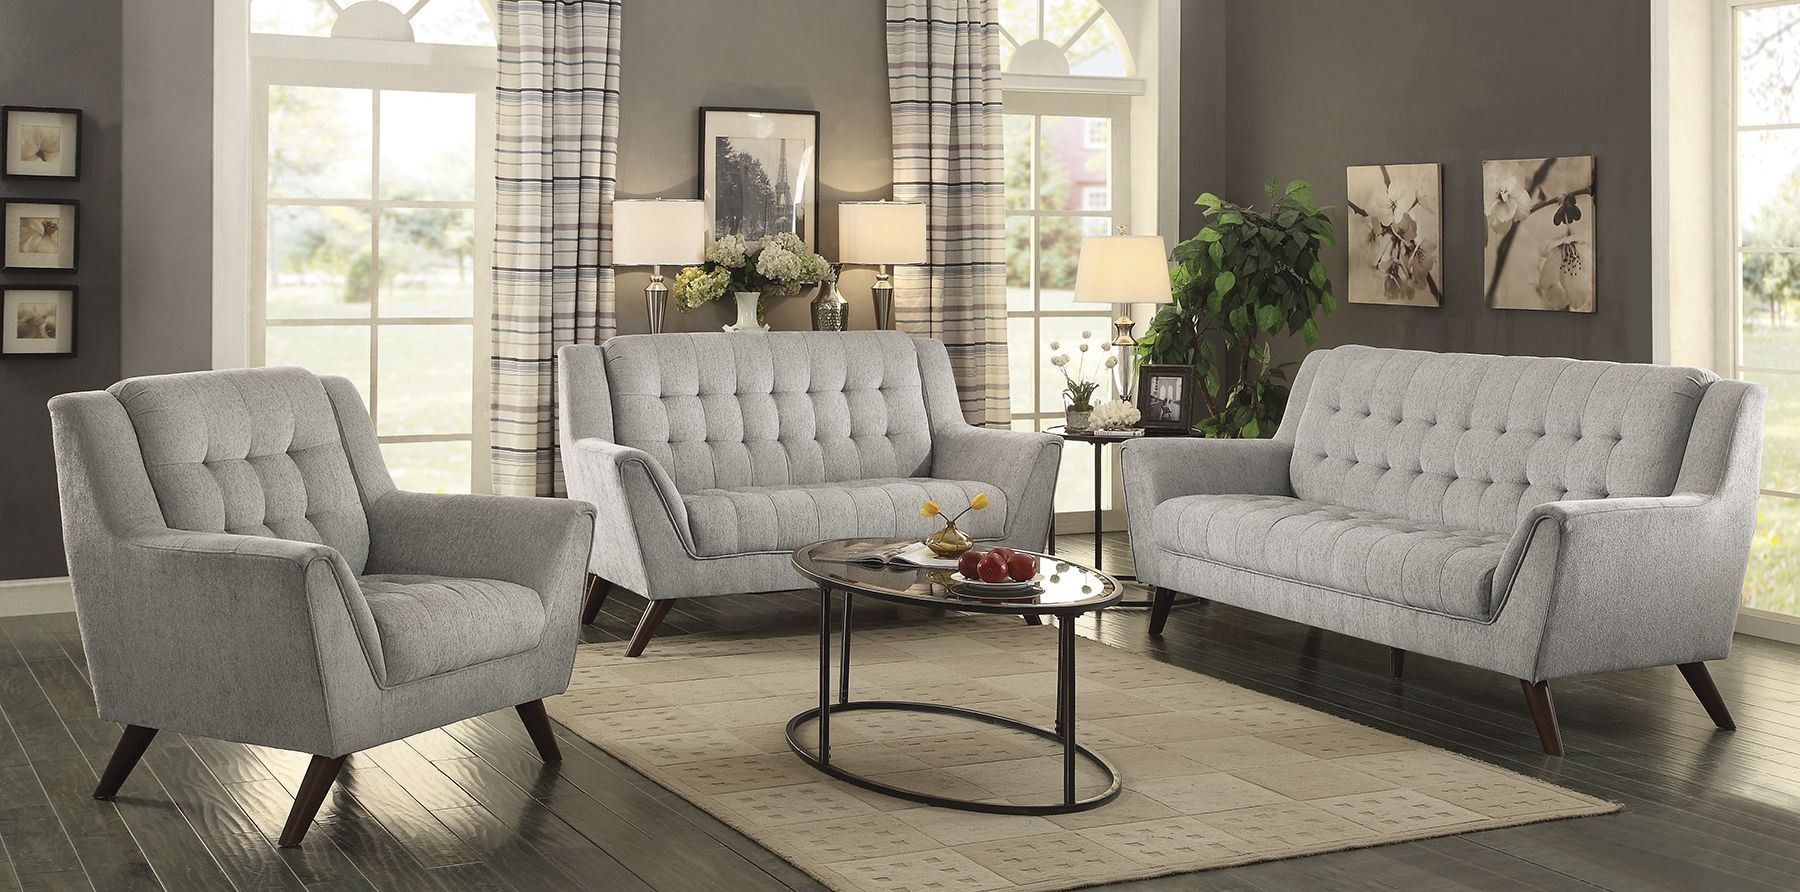 Baby natalia dove gray living room set 511031 coaster for Front room furniture sets